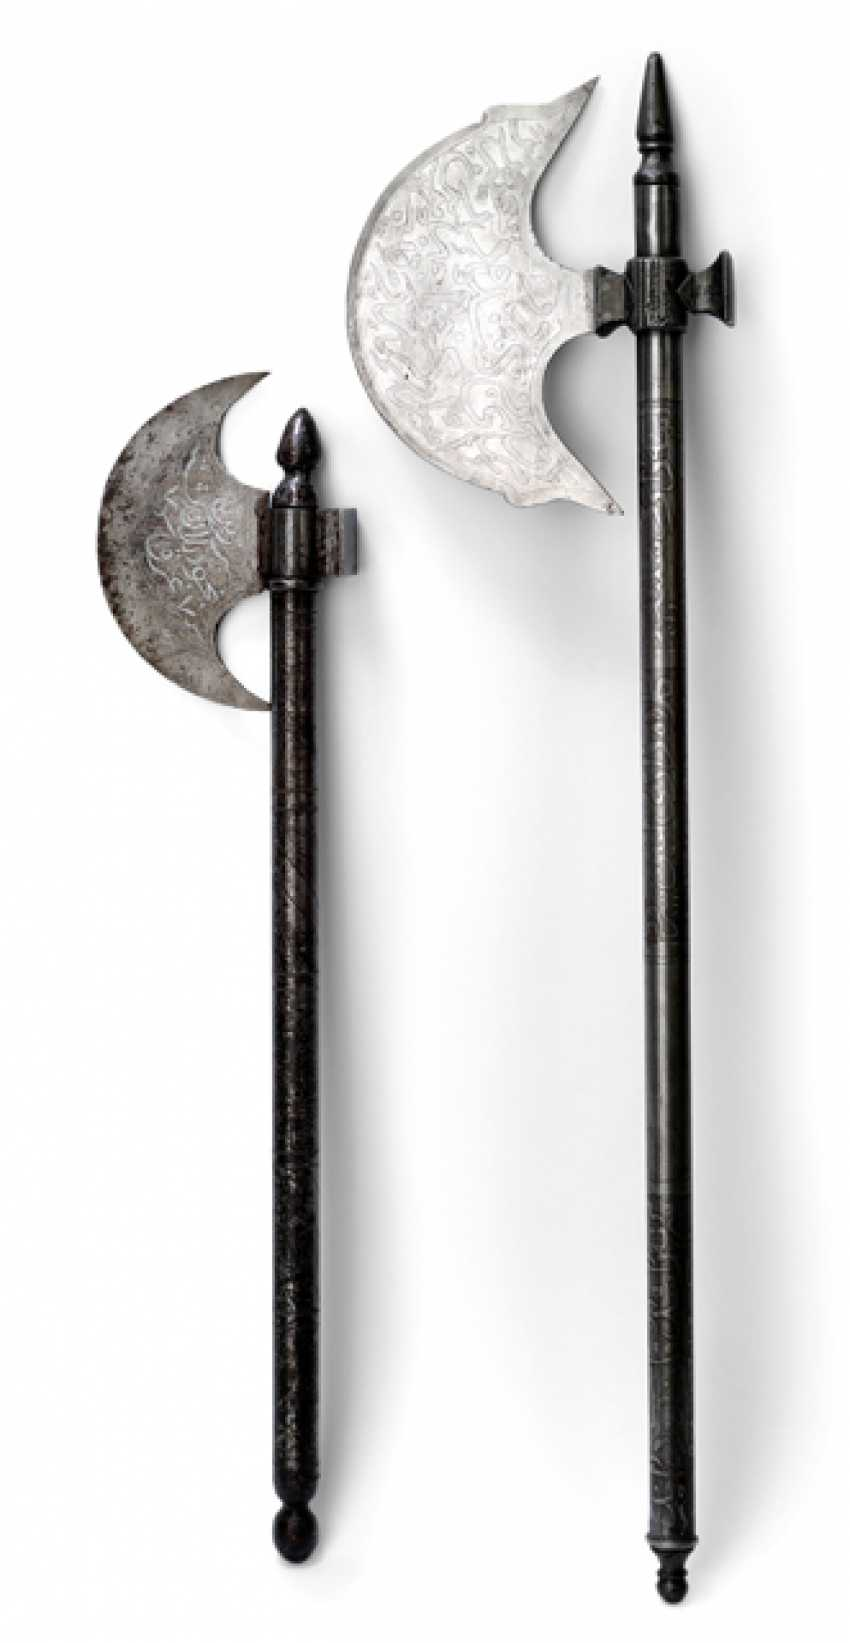 TWO BATTLE-AXES MADE OF IRON - photo 1